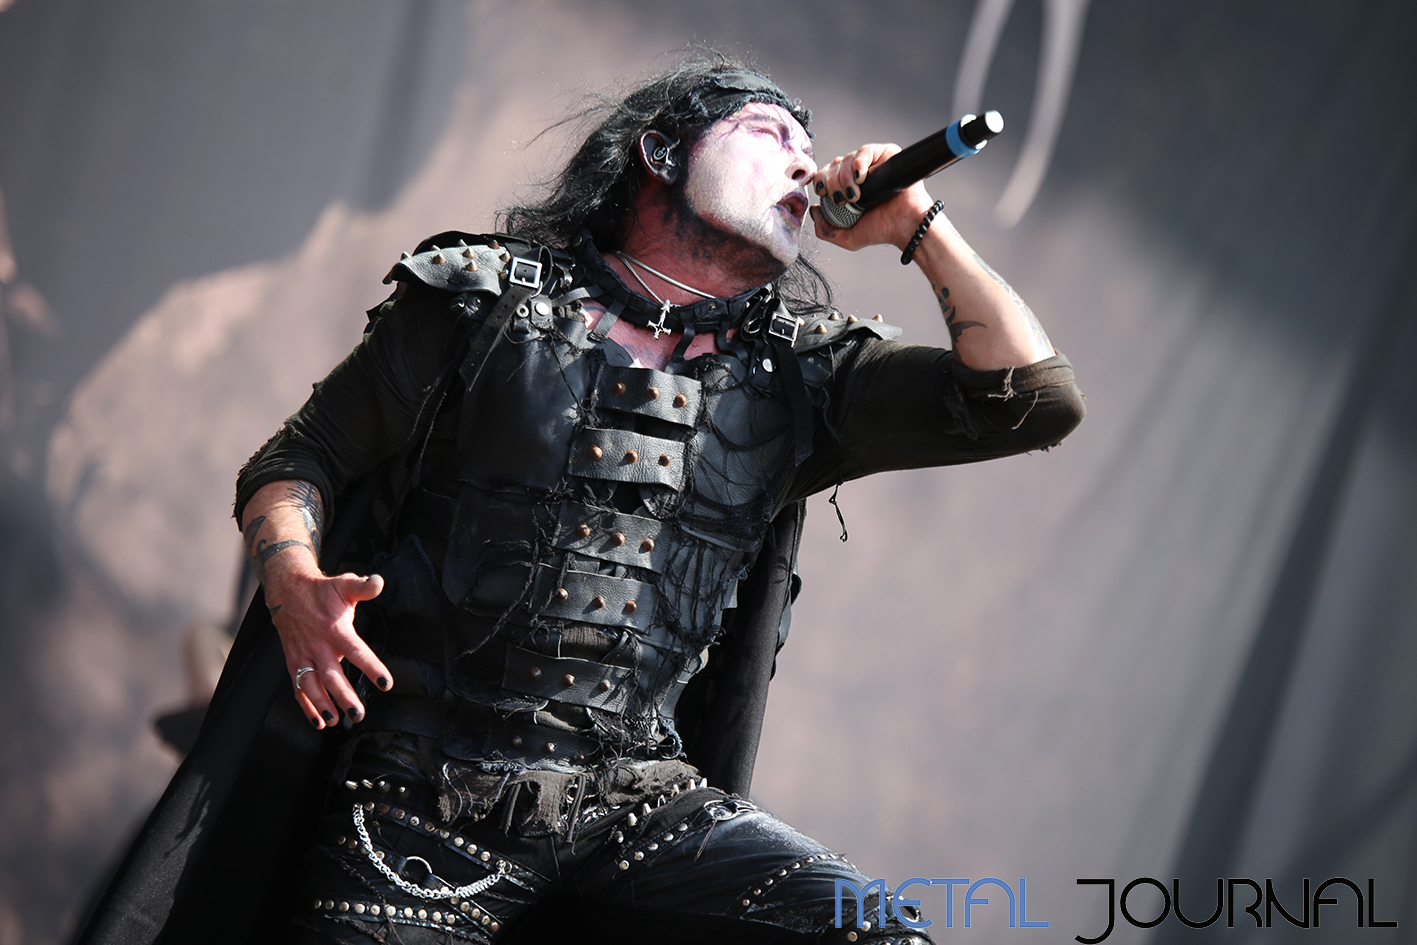 cradle of filth - metal journal rock fest barcelona 2019 pic 9